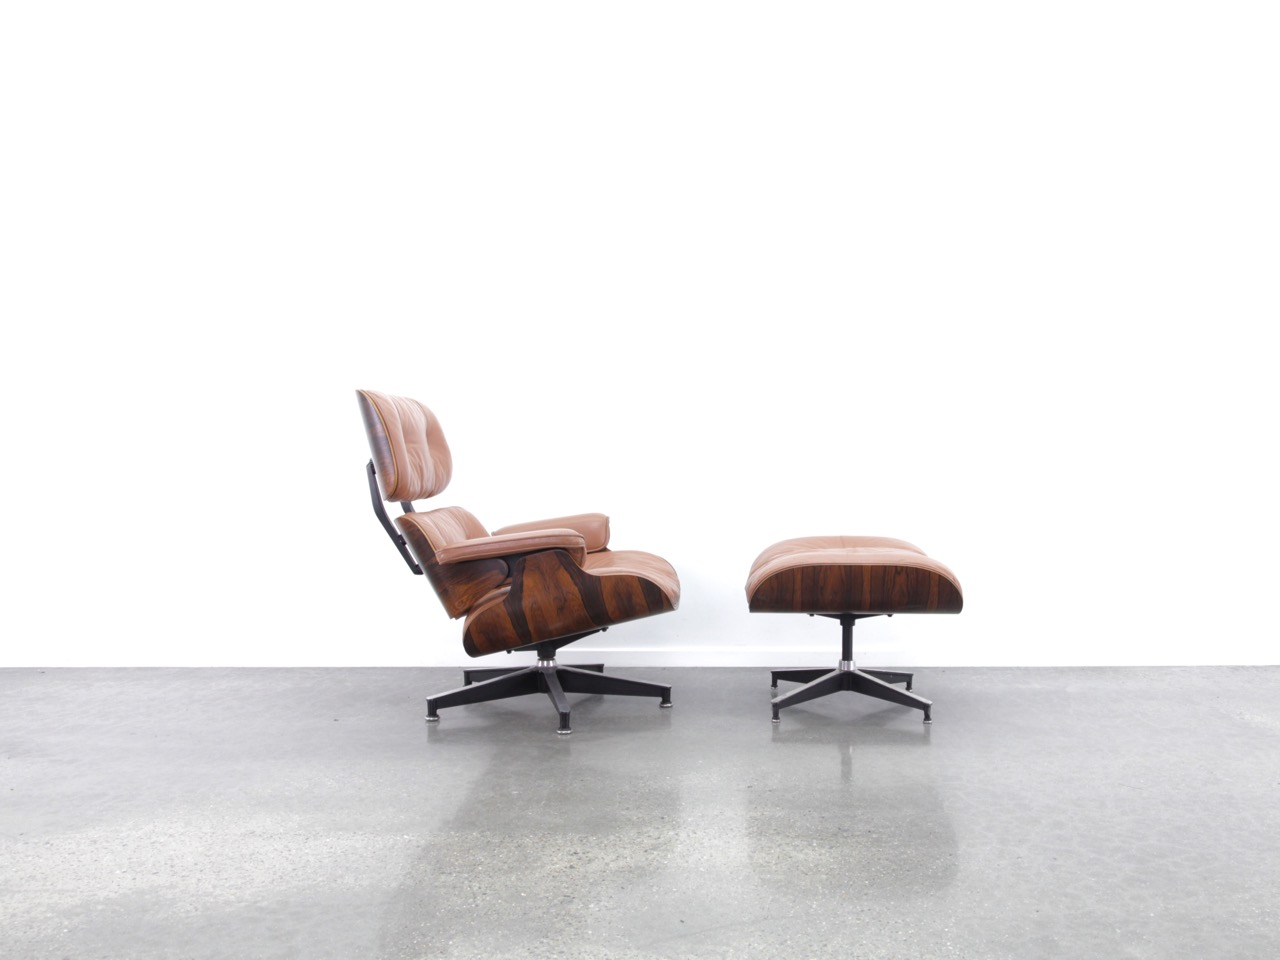 Brown 1970s Herman Miller Eames Eames Lounge Chair & Ottoman Lounge Seating in very good condition